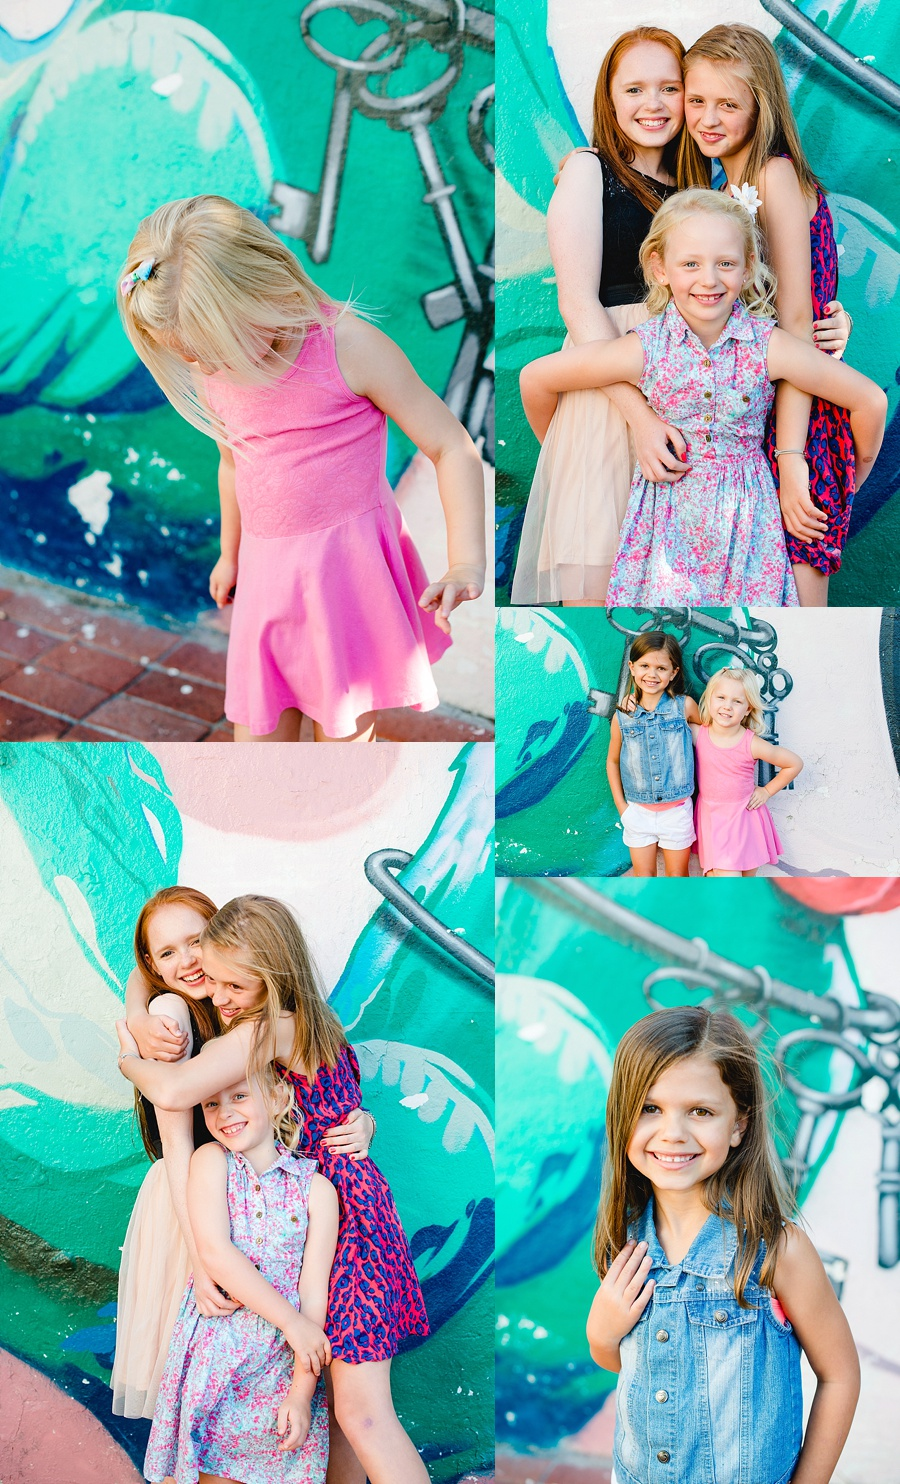 Darren Bester Photography - Cape Town Photographer - The van der Westhuizen Family_0020.jpg